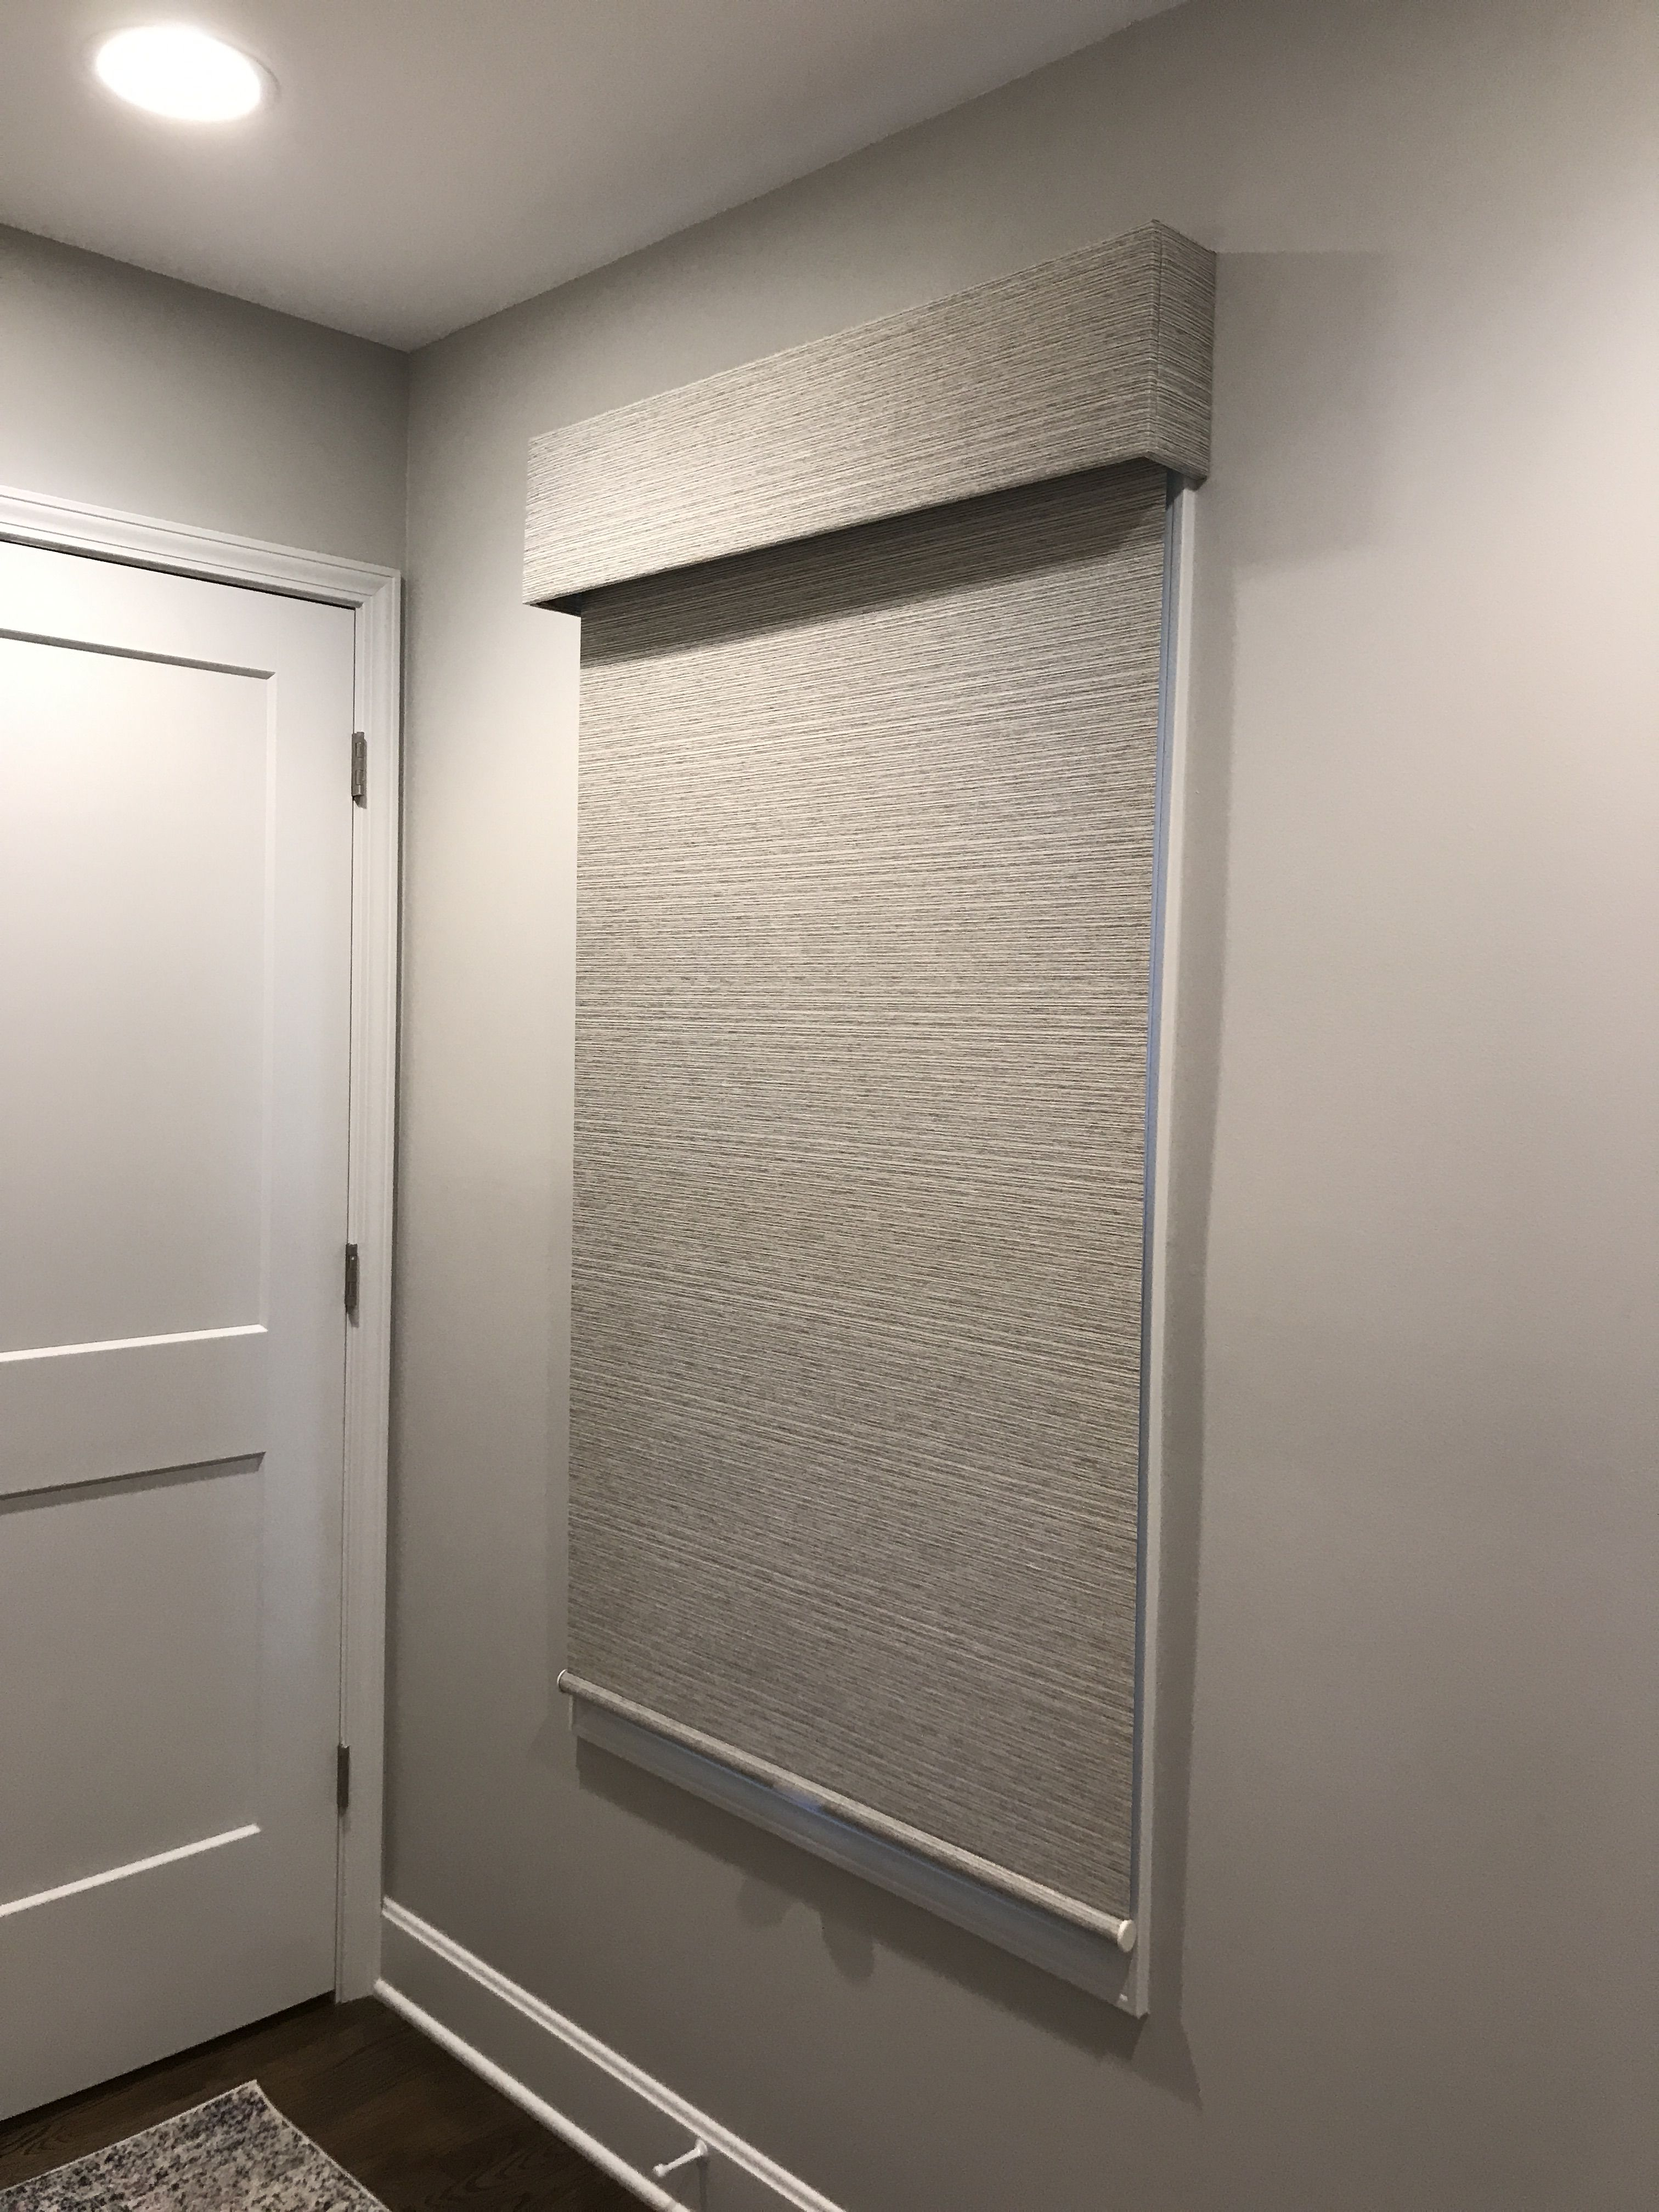 Outside Mount Roller Shade Roller Shades Honeycomb Shades Blackout Roller Shades